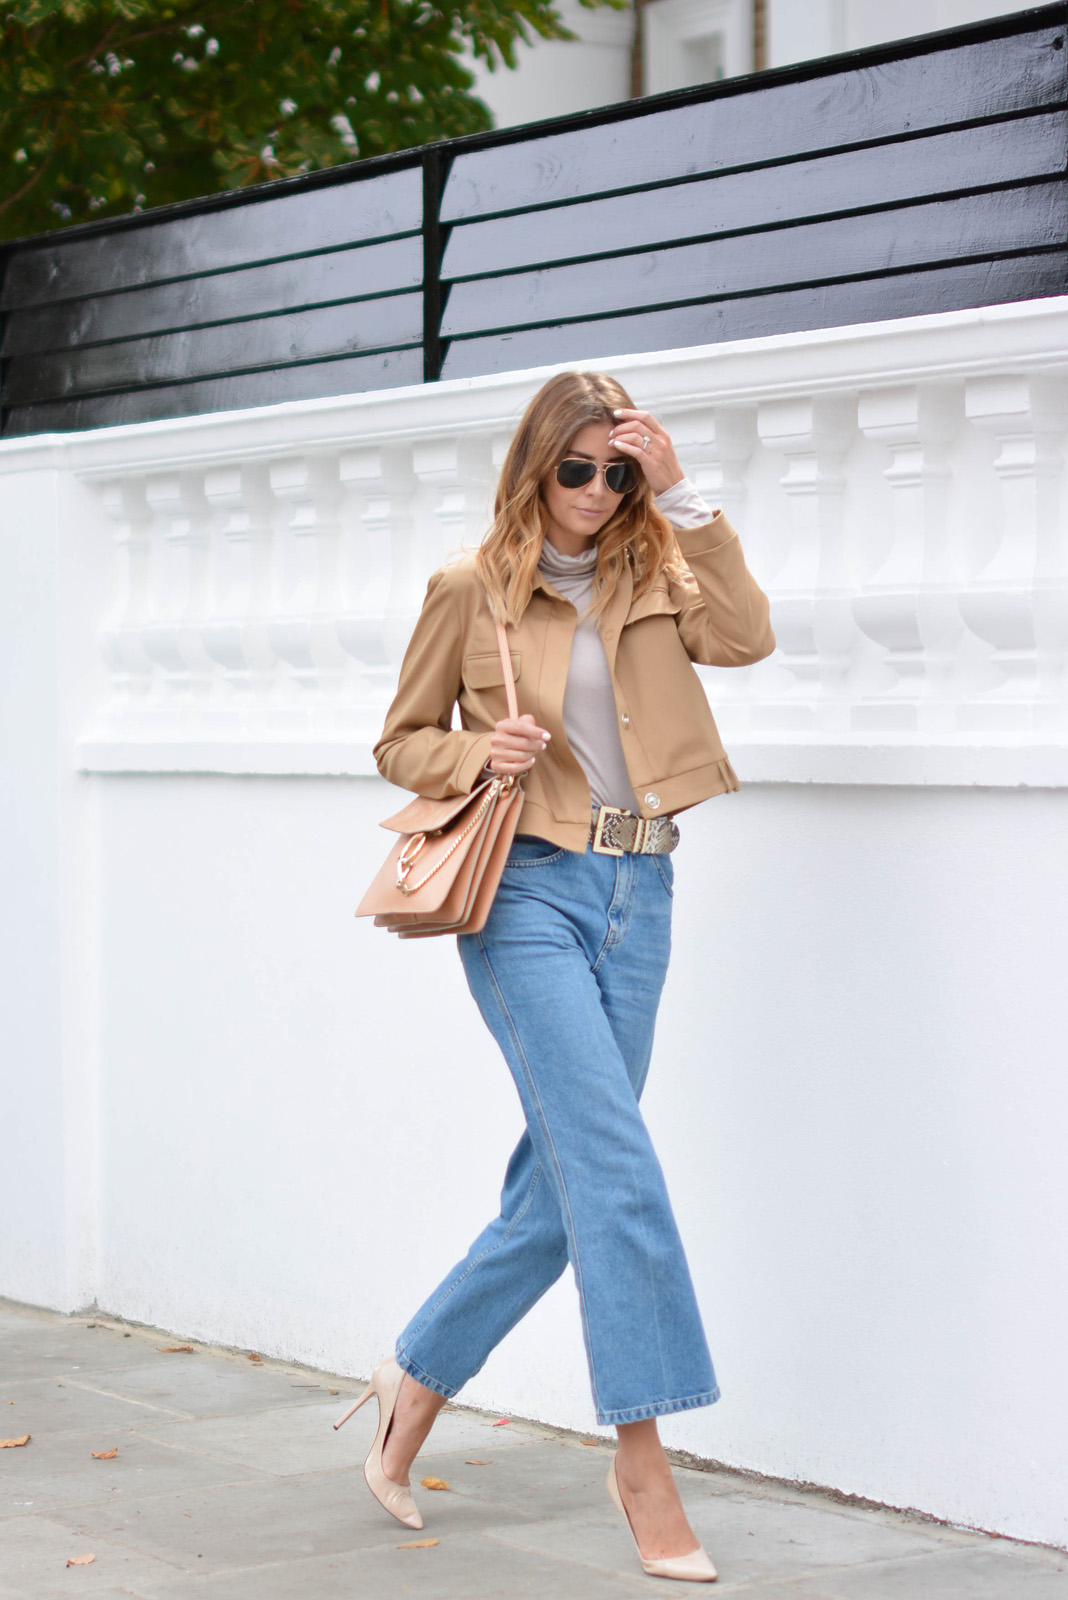 EJSTYLE wears Chloe Faye bag medium in Misty Beige, snakeskin belt, taupe roll neck top, light wash wide leg Topshop jeans, cropped camel jacket, nude pointed heels, aviator sunglasses